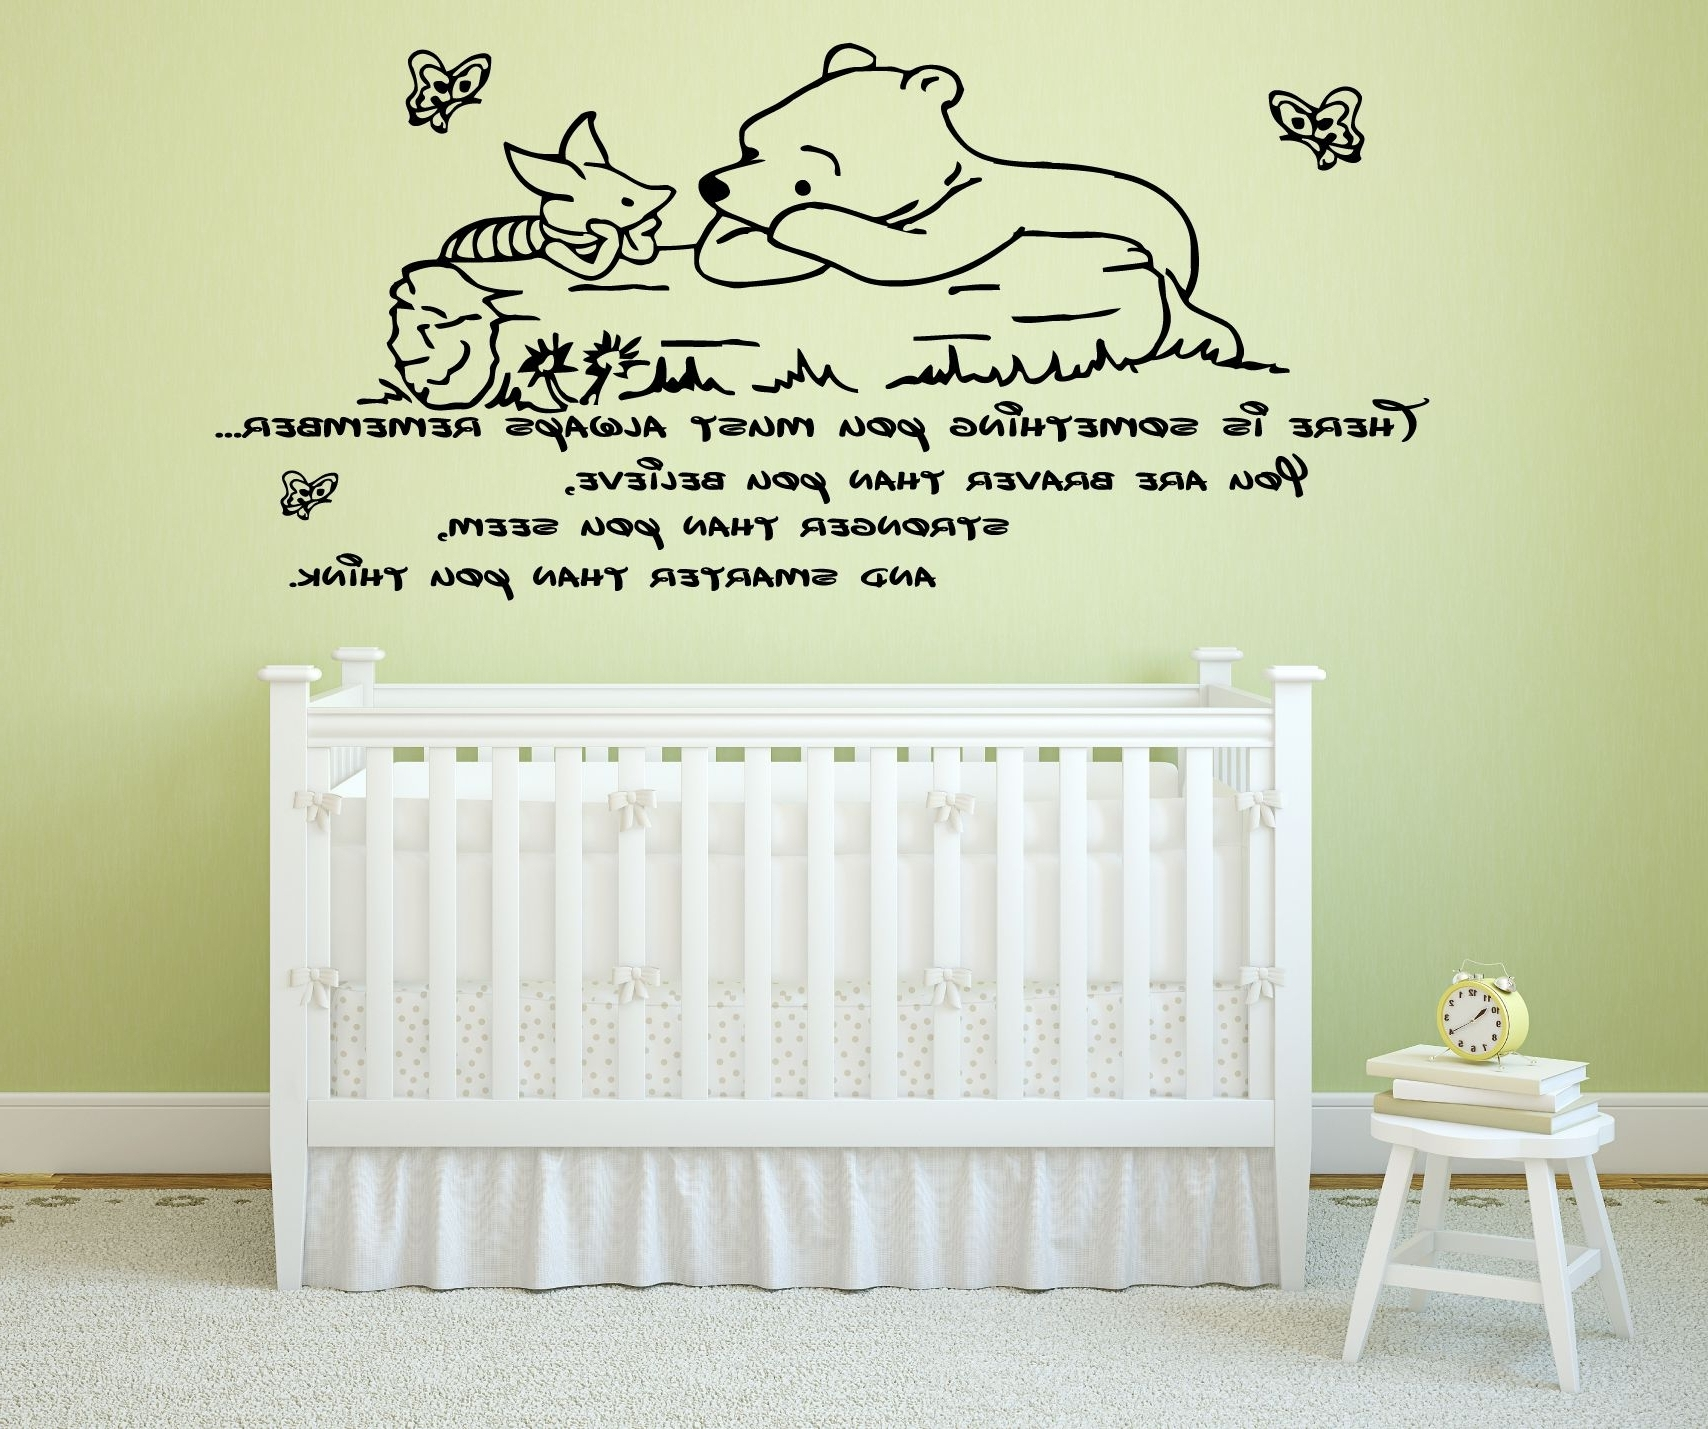 Winnie The Pooh Wall Decor For Nursery • Walls Decor Intended For Popular Winnie The Pooh Wall Decor (View 8 of 15)